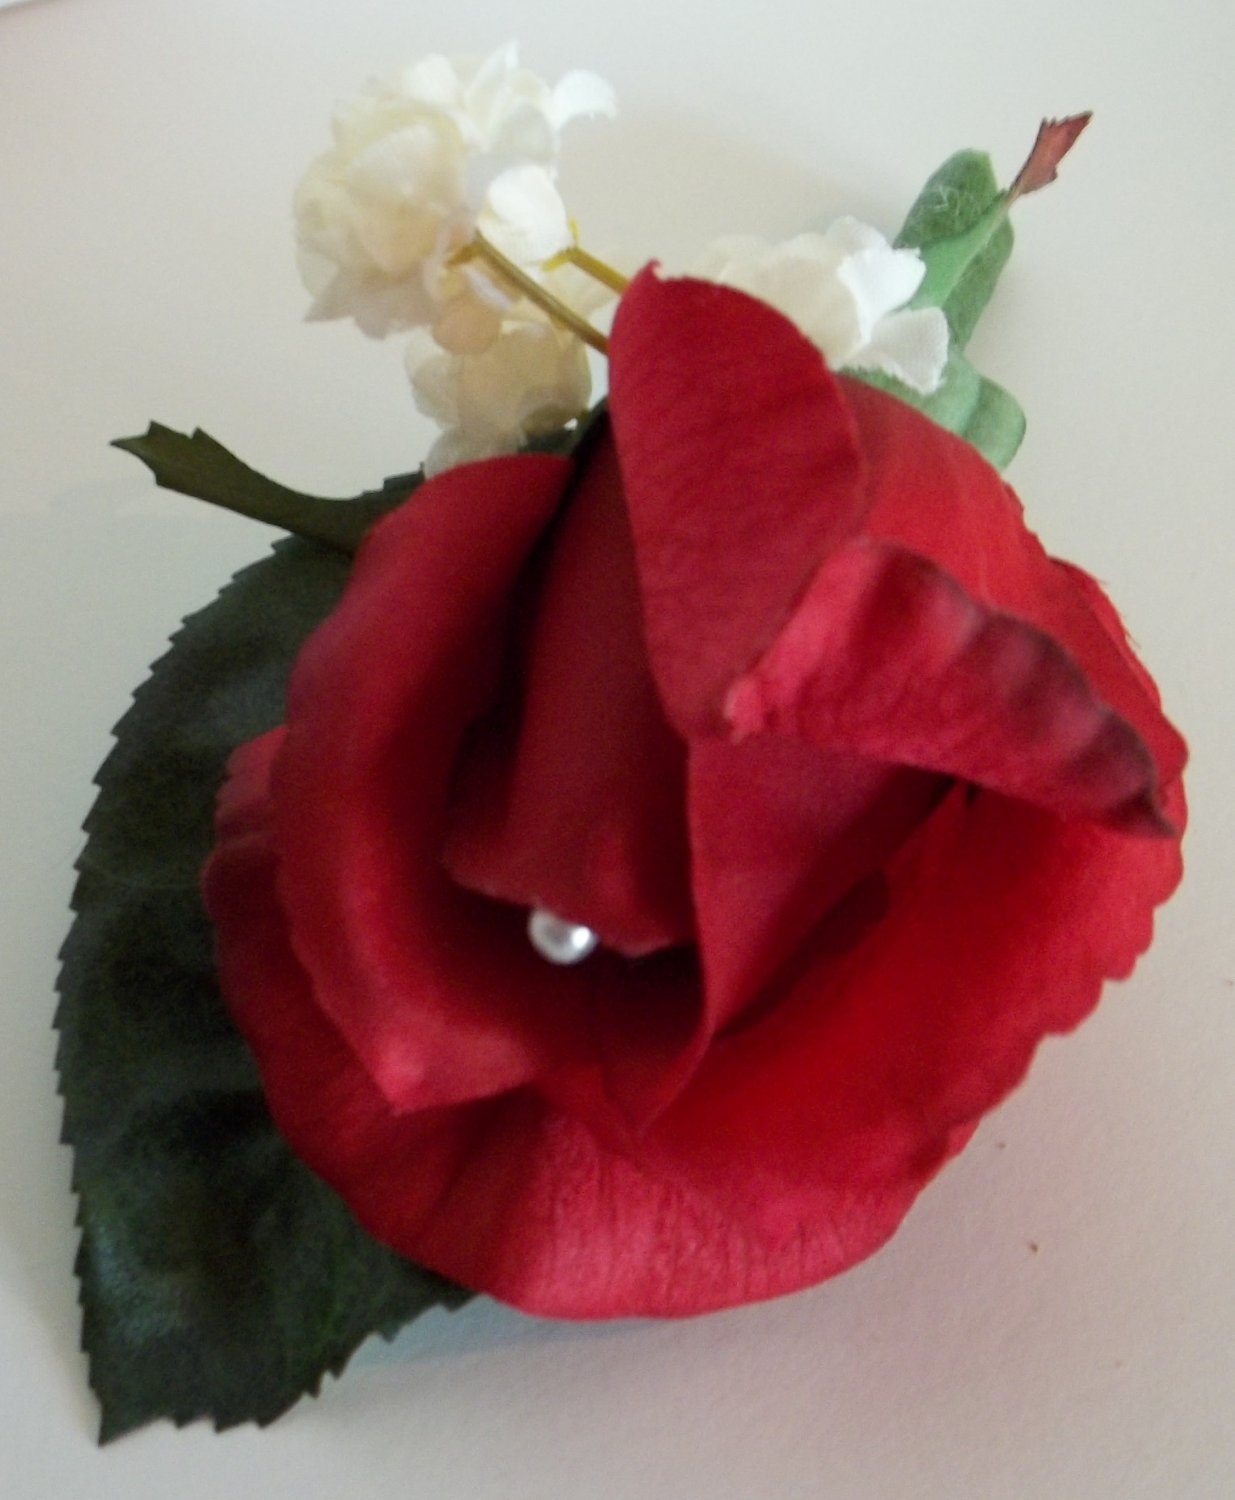 True Touch Boutonniere. Single Rose bud with pearl pin accent.From Customweddingdesigns